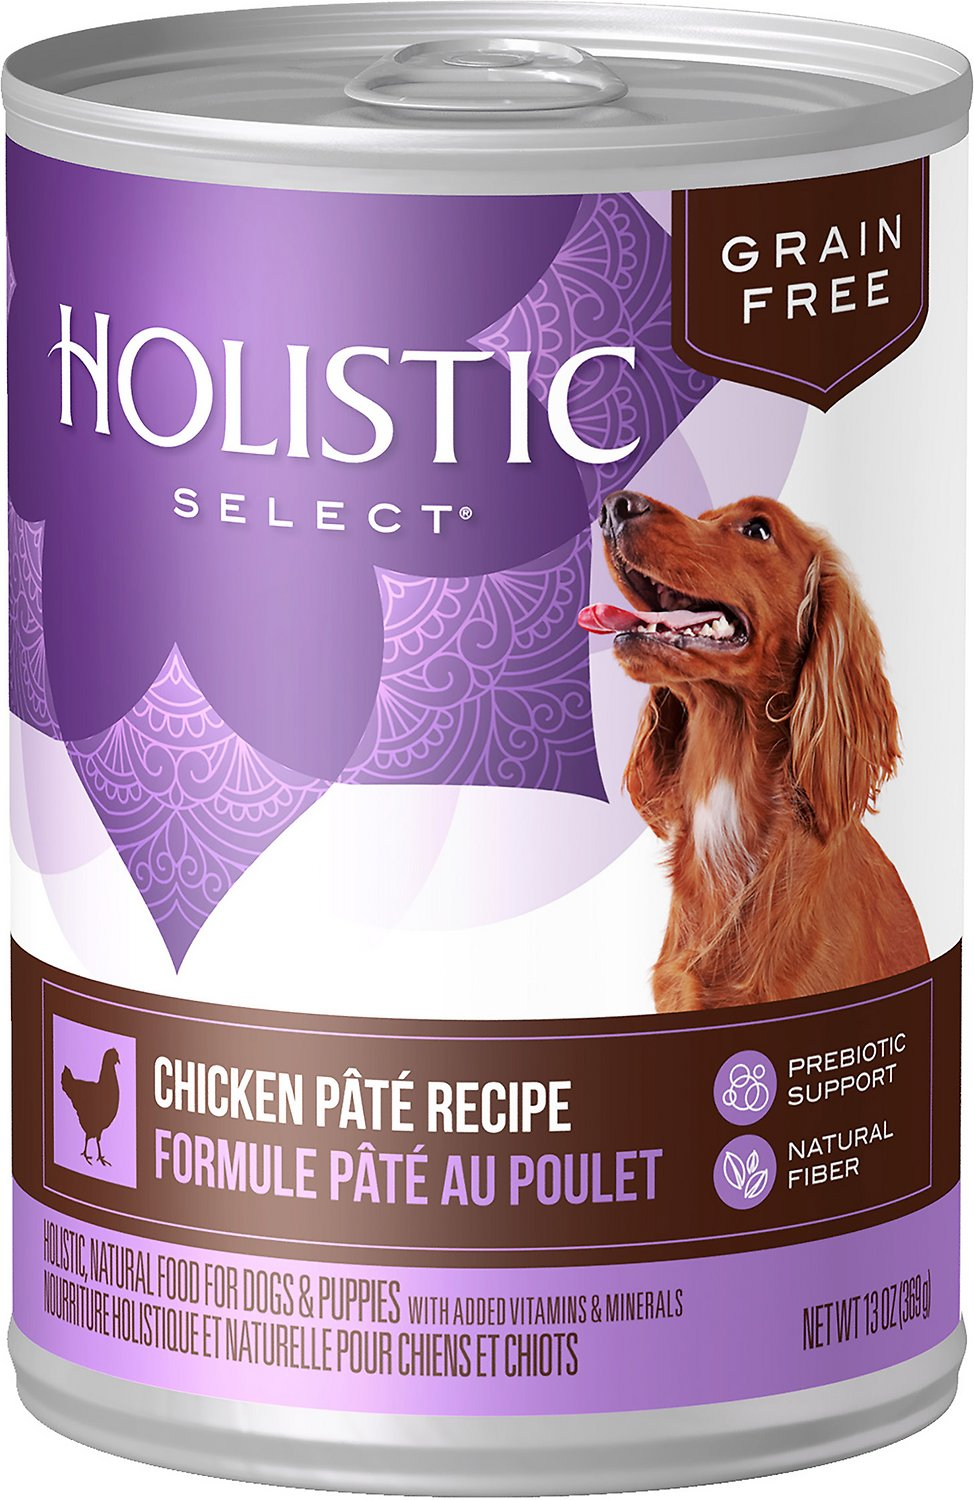 Holistic Select Chicken Pate Recipe Grain-Free Canned Dog Food Image